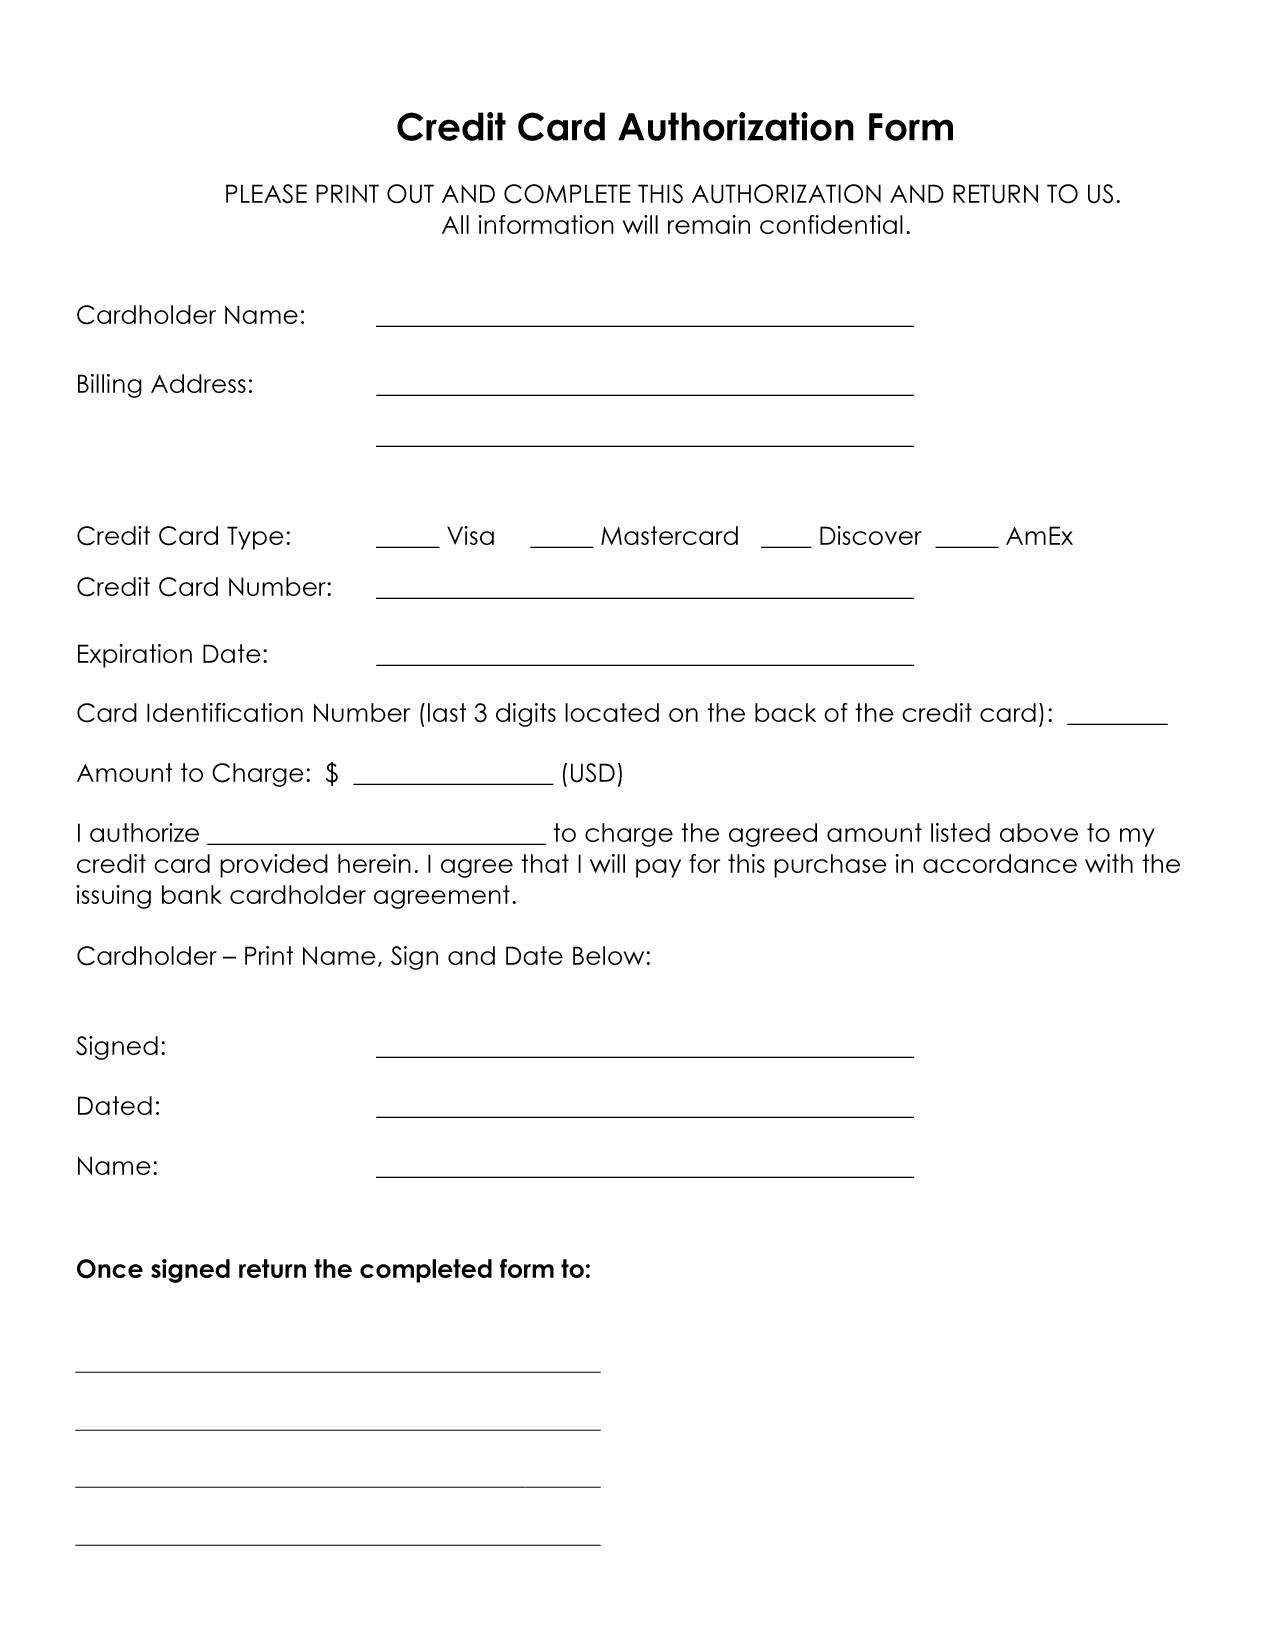 33 Credit Card Authorization Form Template Download Pdf Word Within Credit Card Payment Form Templ Credit Card Images Hotel Credit Cards Credit Card Design